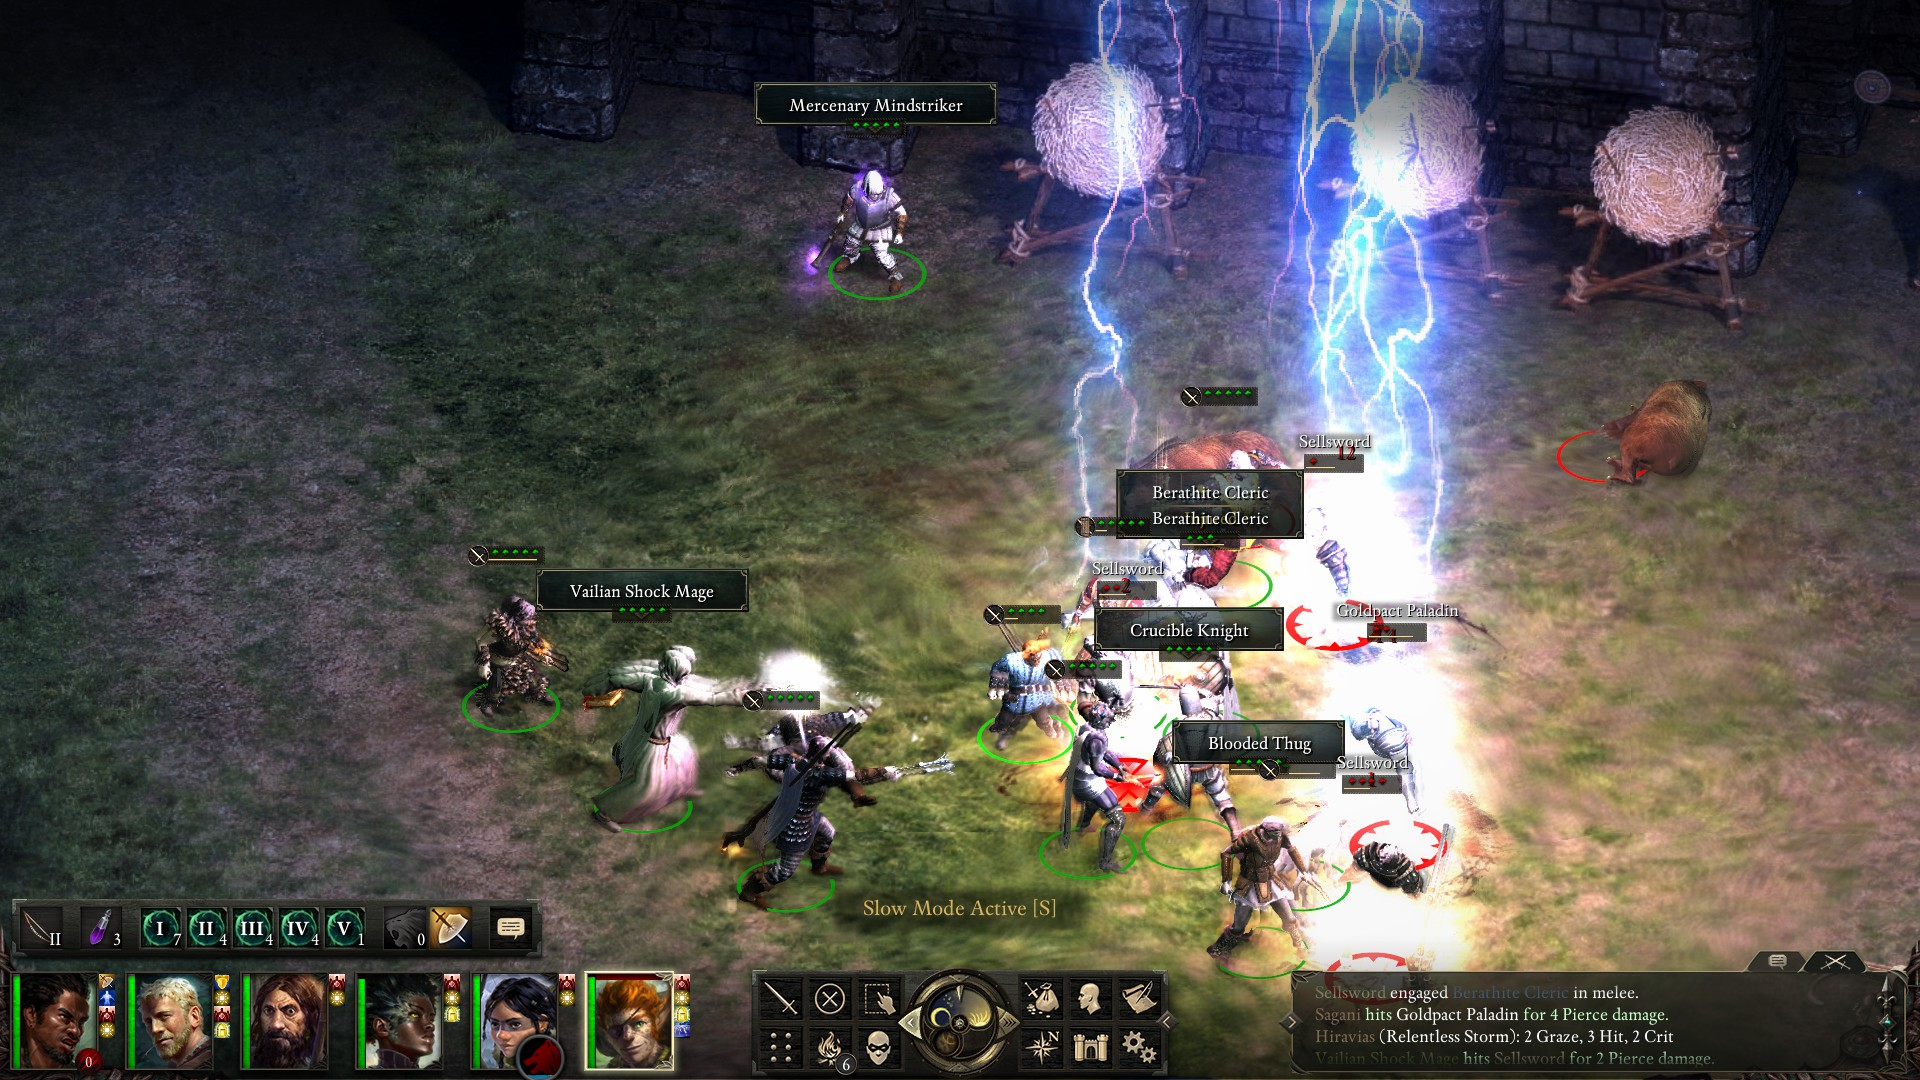 Defending your stronghold manually leads to some awesomely crowded fights.